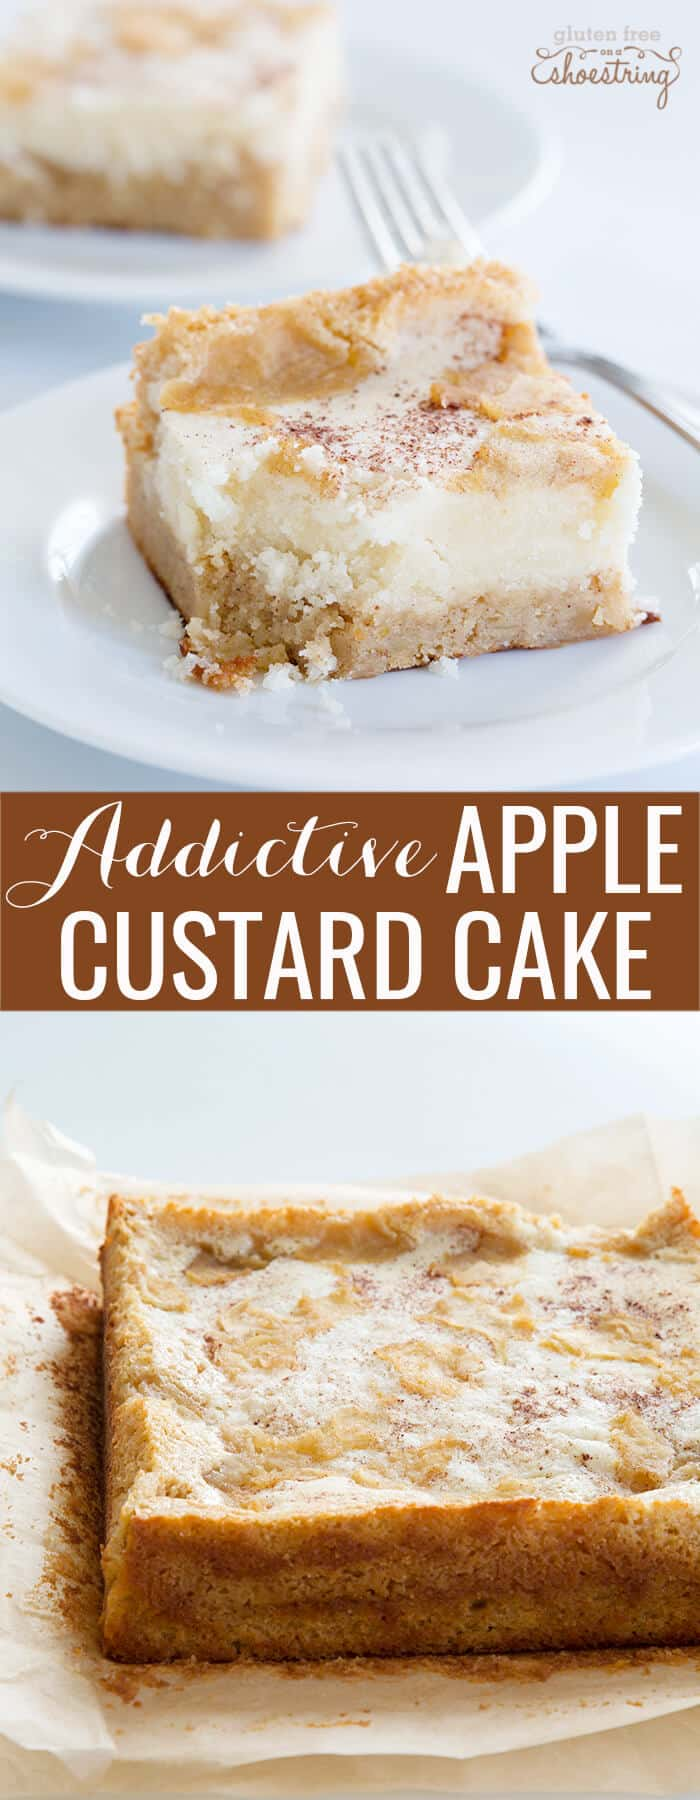 A piece of apple custard cake on a white plate and curst of apple custard cake below